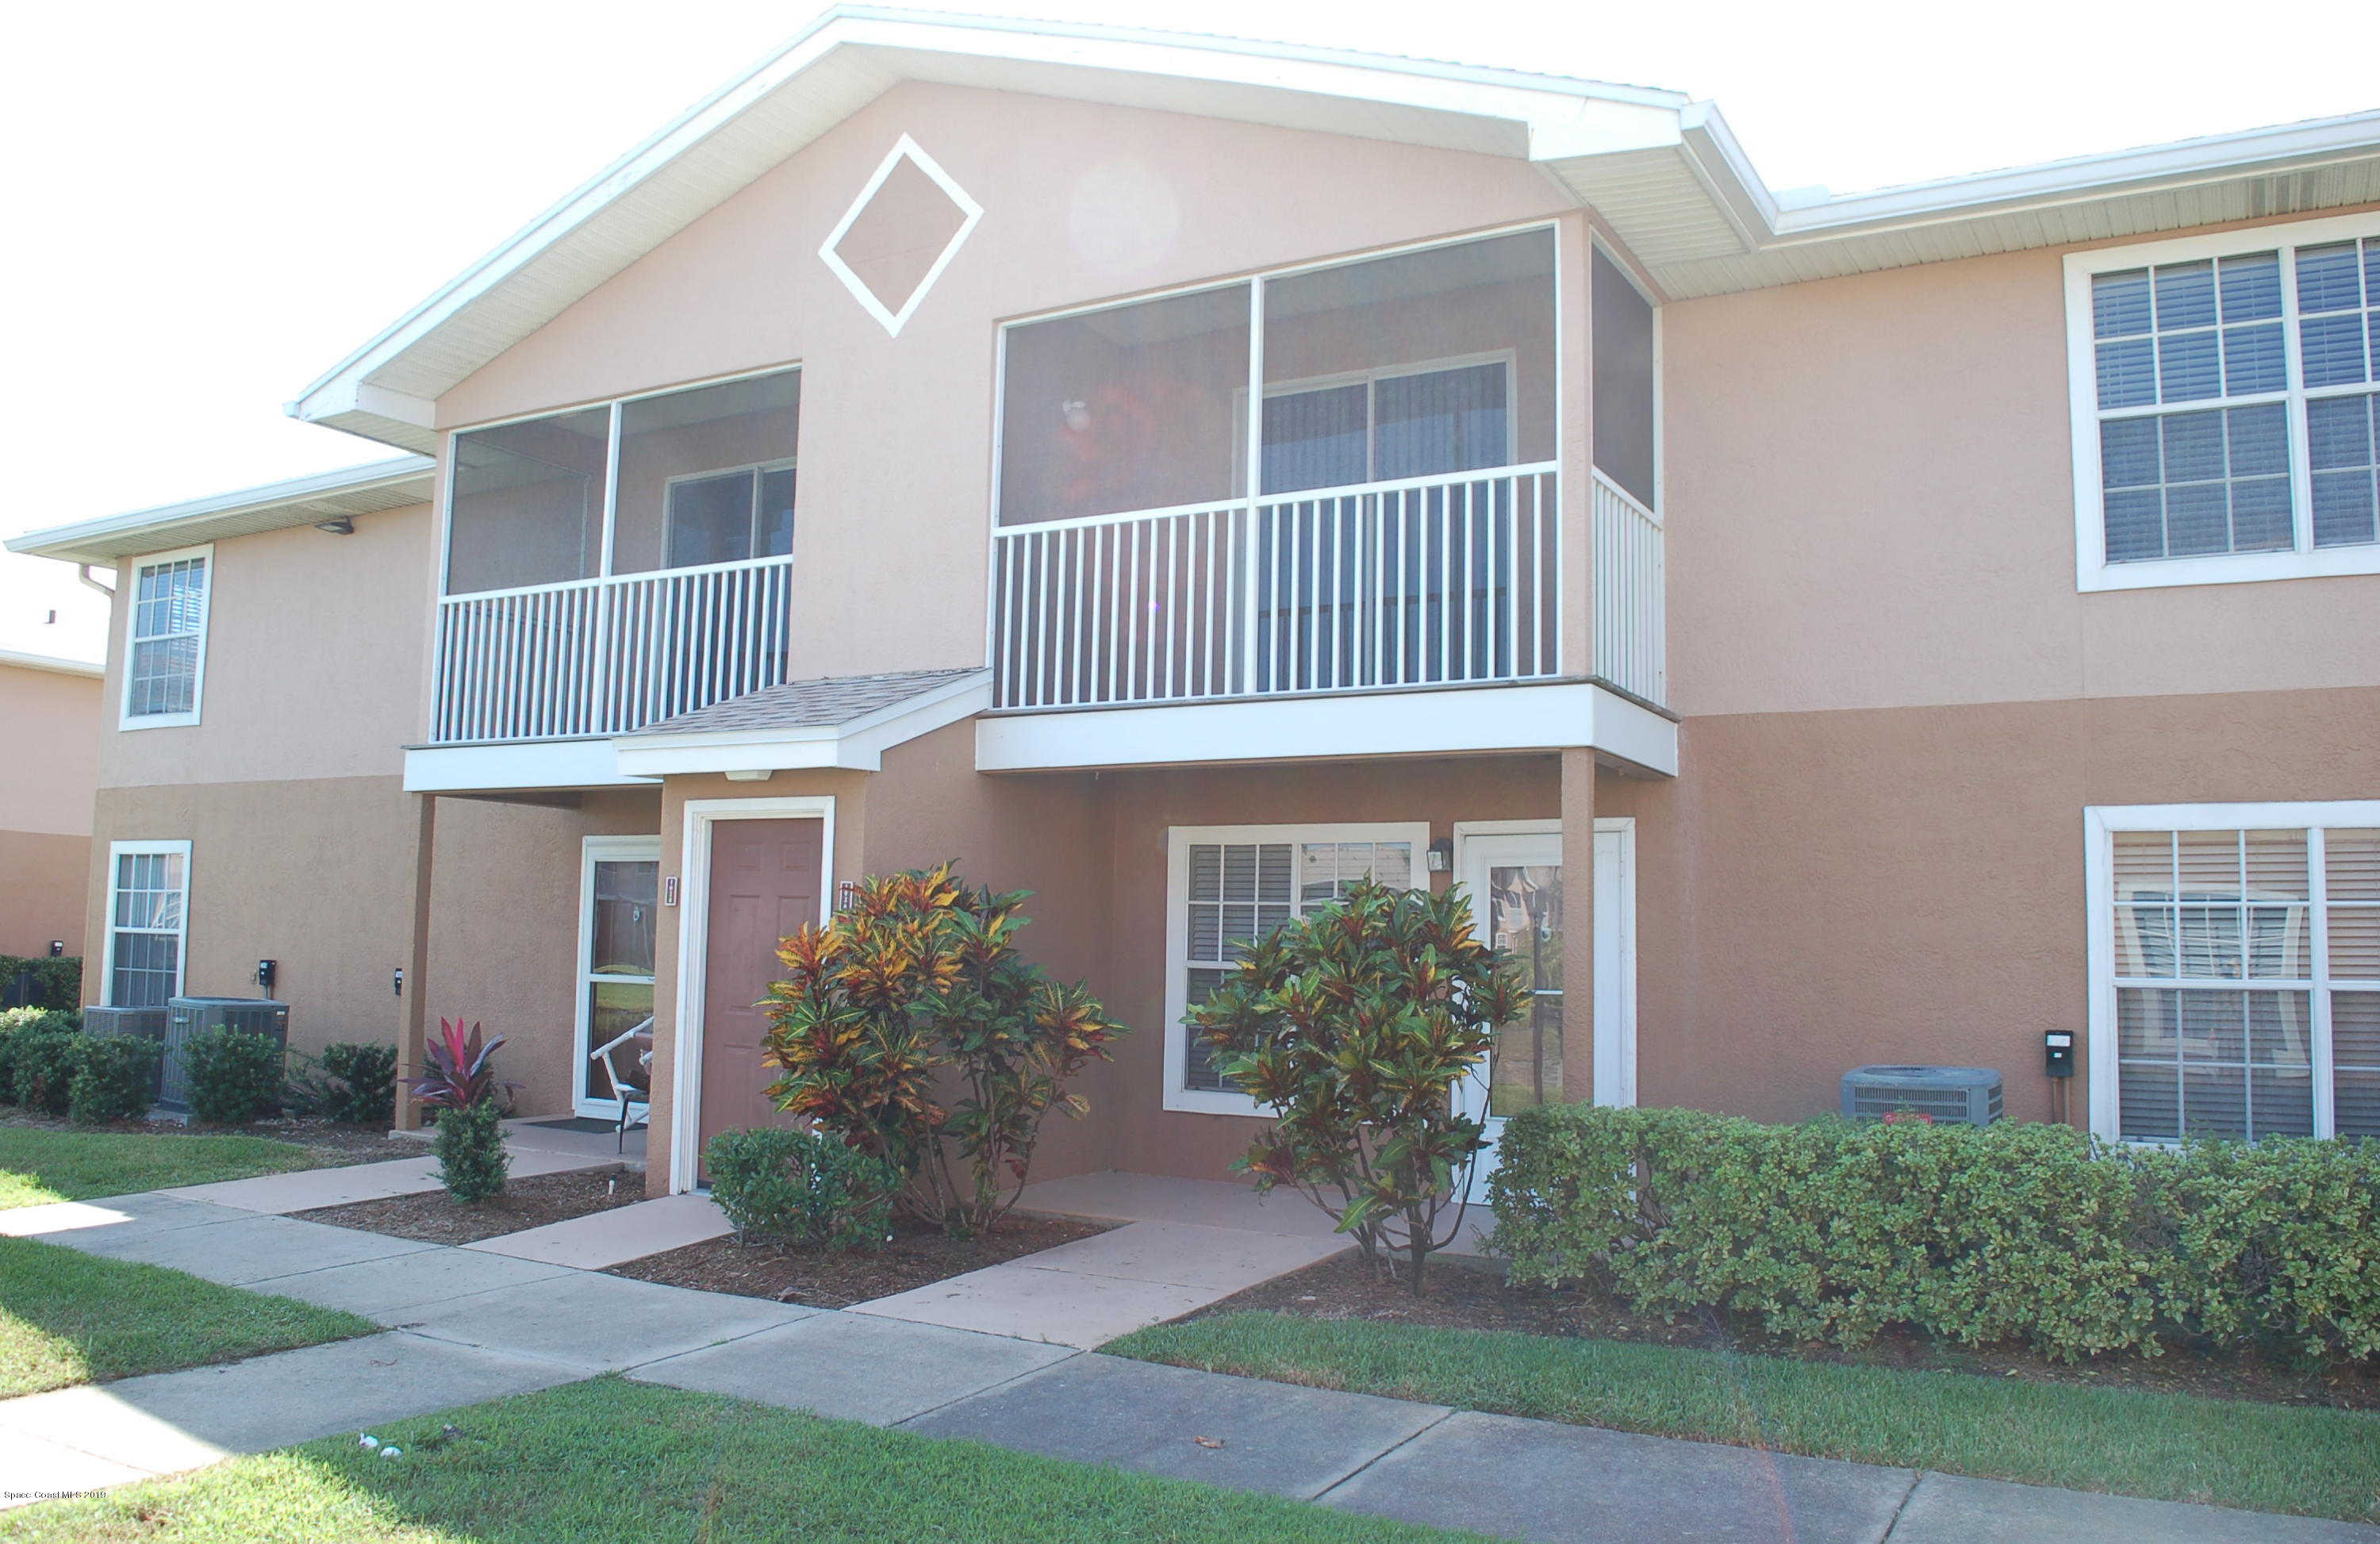 1860 Long Iron Drive #1006, Rockledge, FL 32955 is now new to the market!